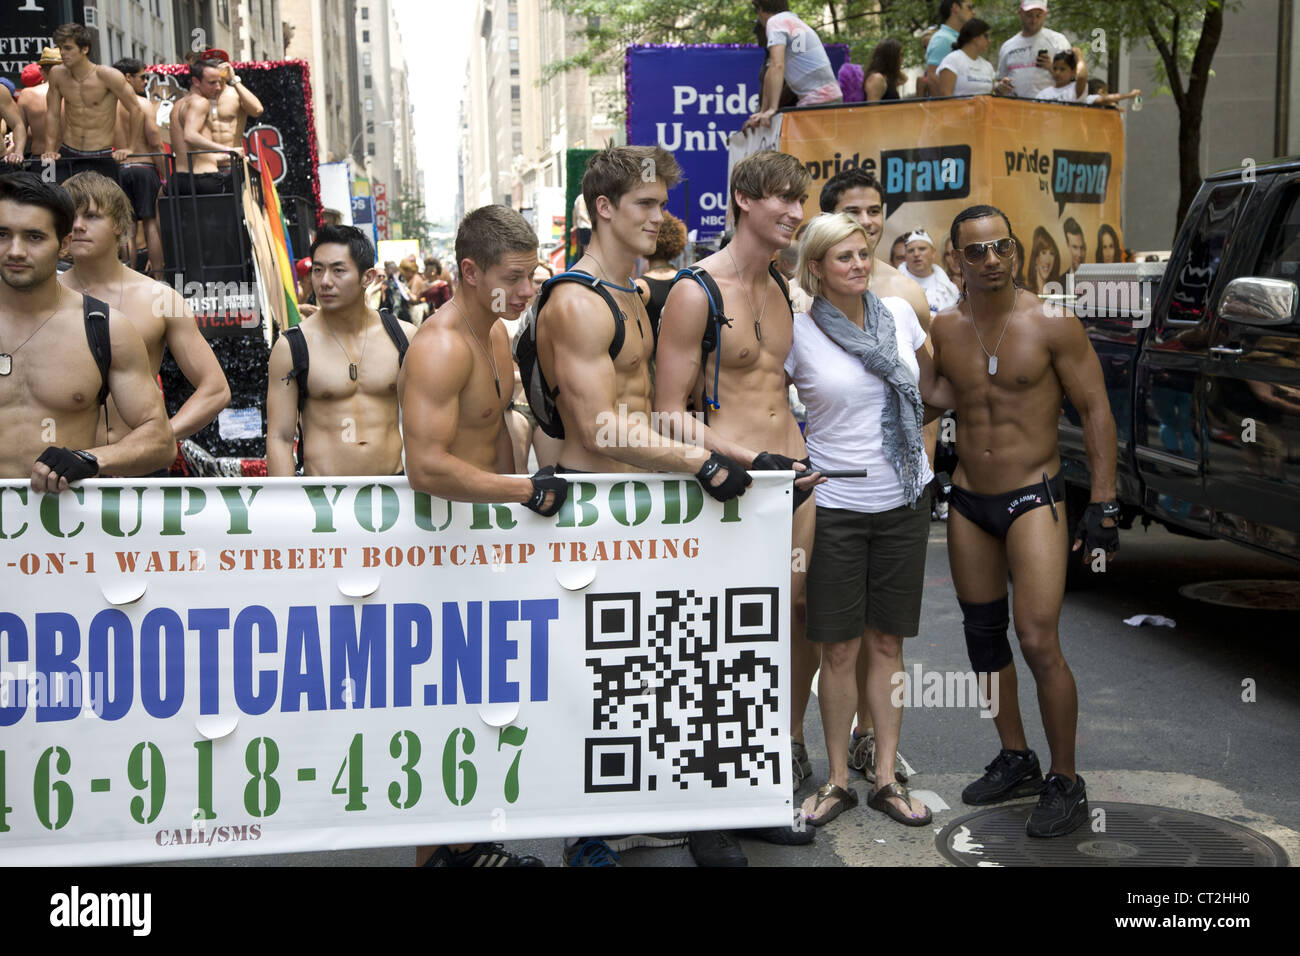 Gay boot camps